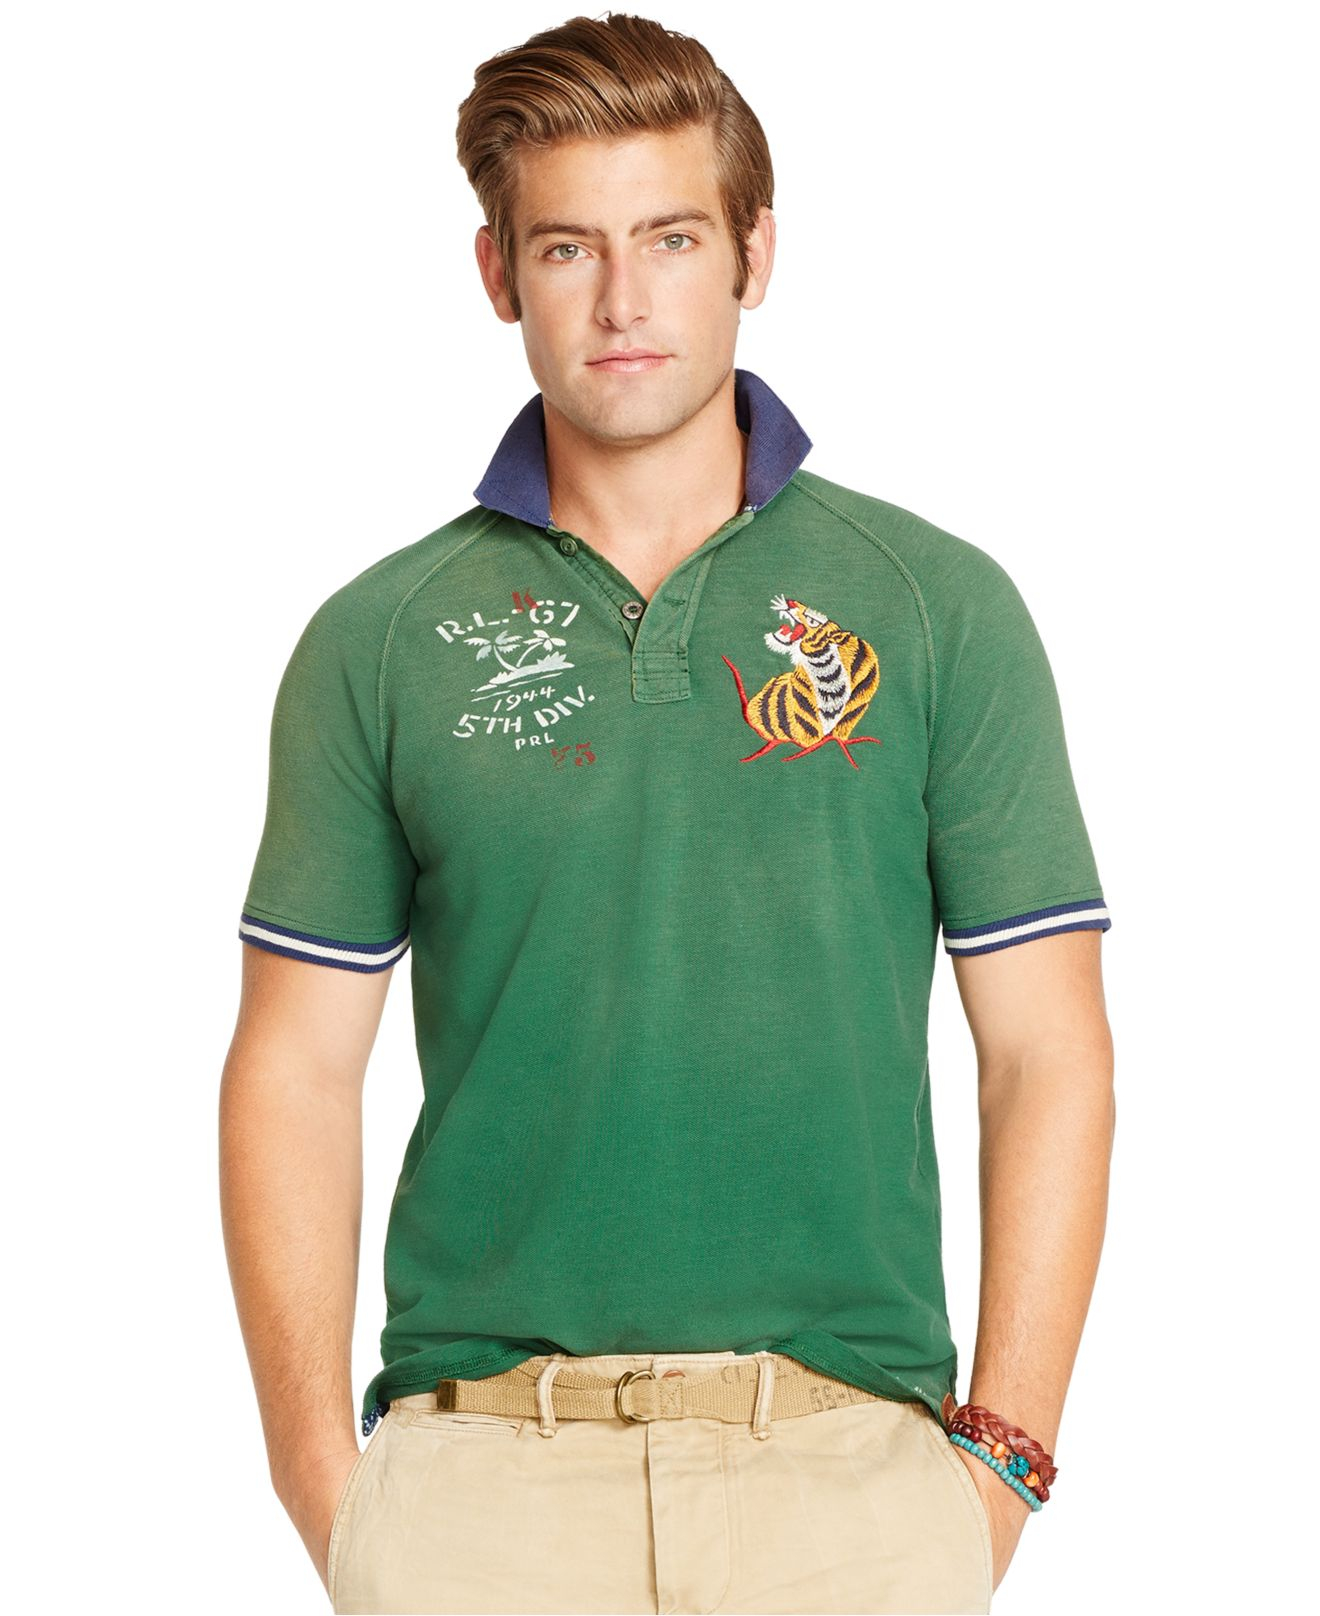 Lyst polo ralph lauren embroidered polo shirt in green for The tour jacket polo shirt